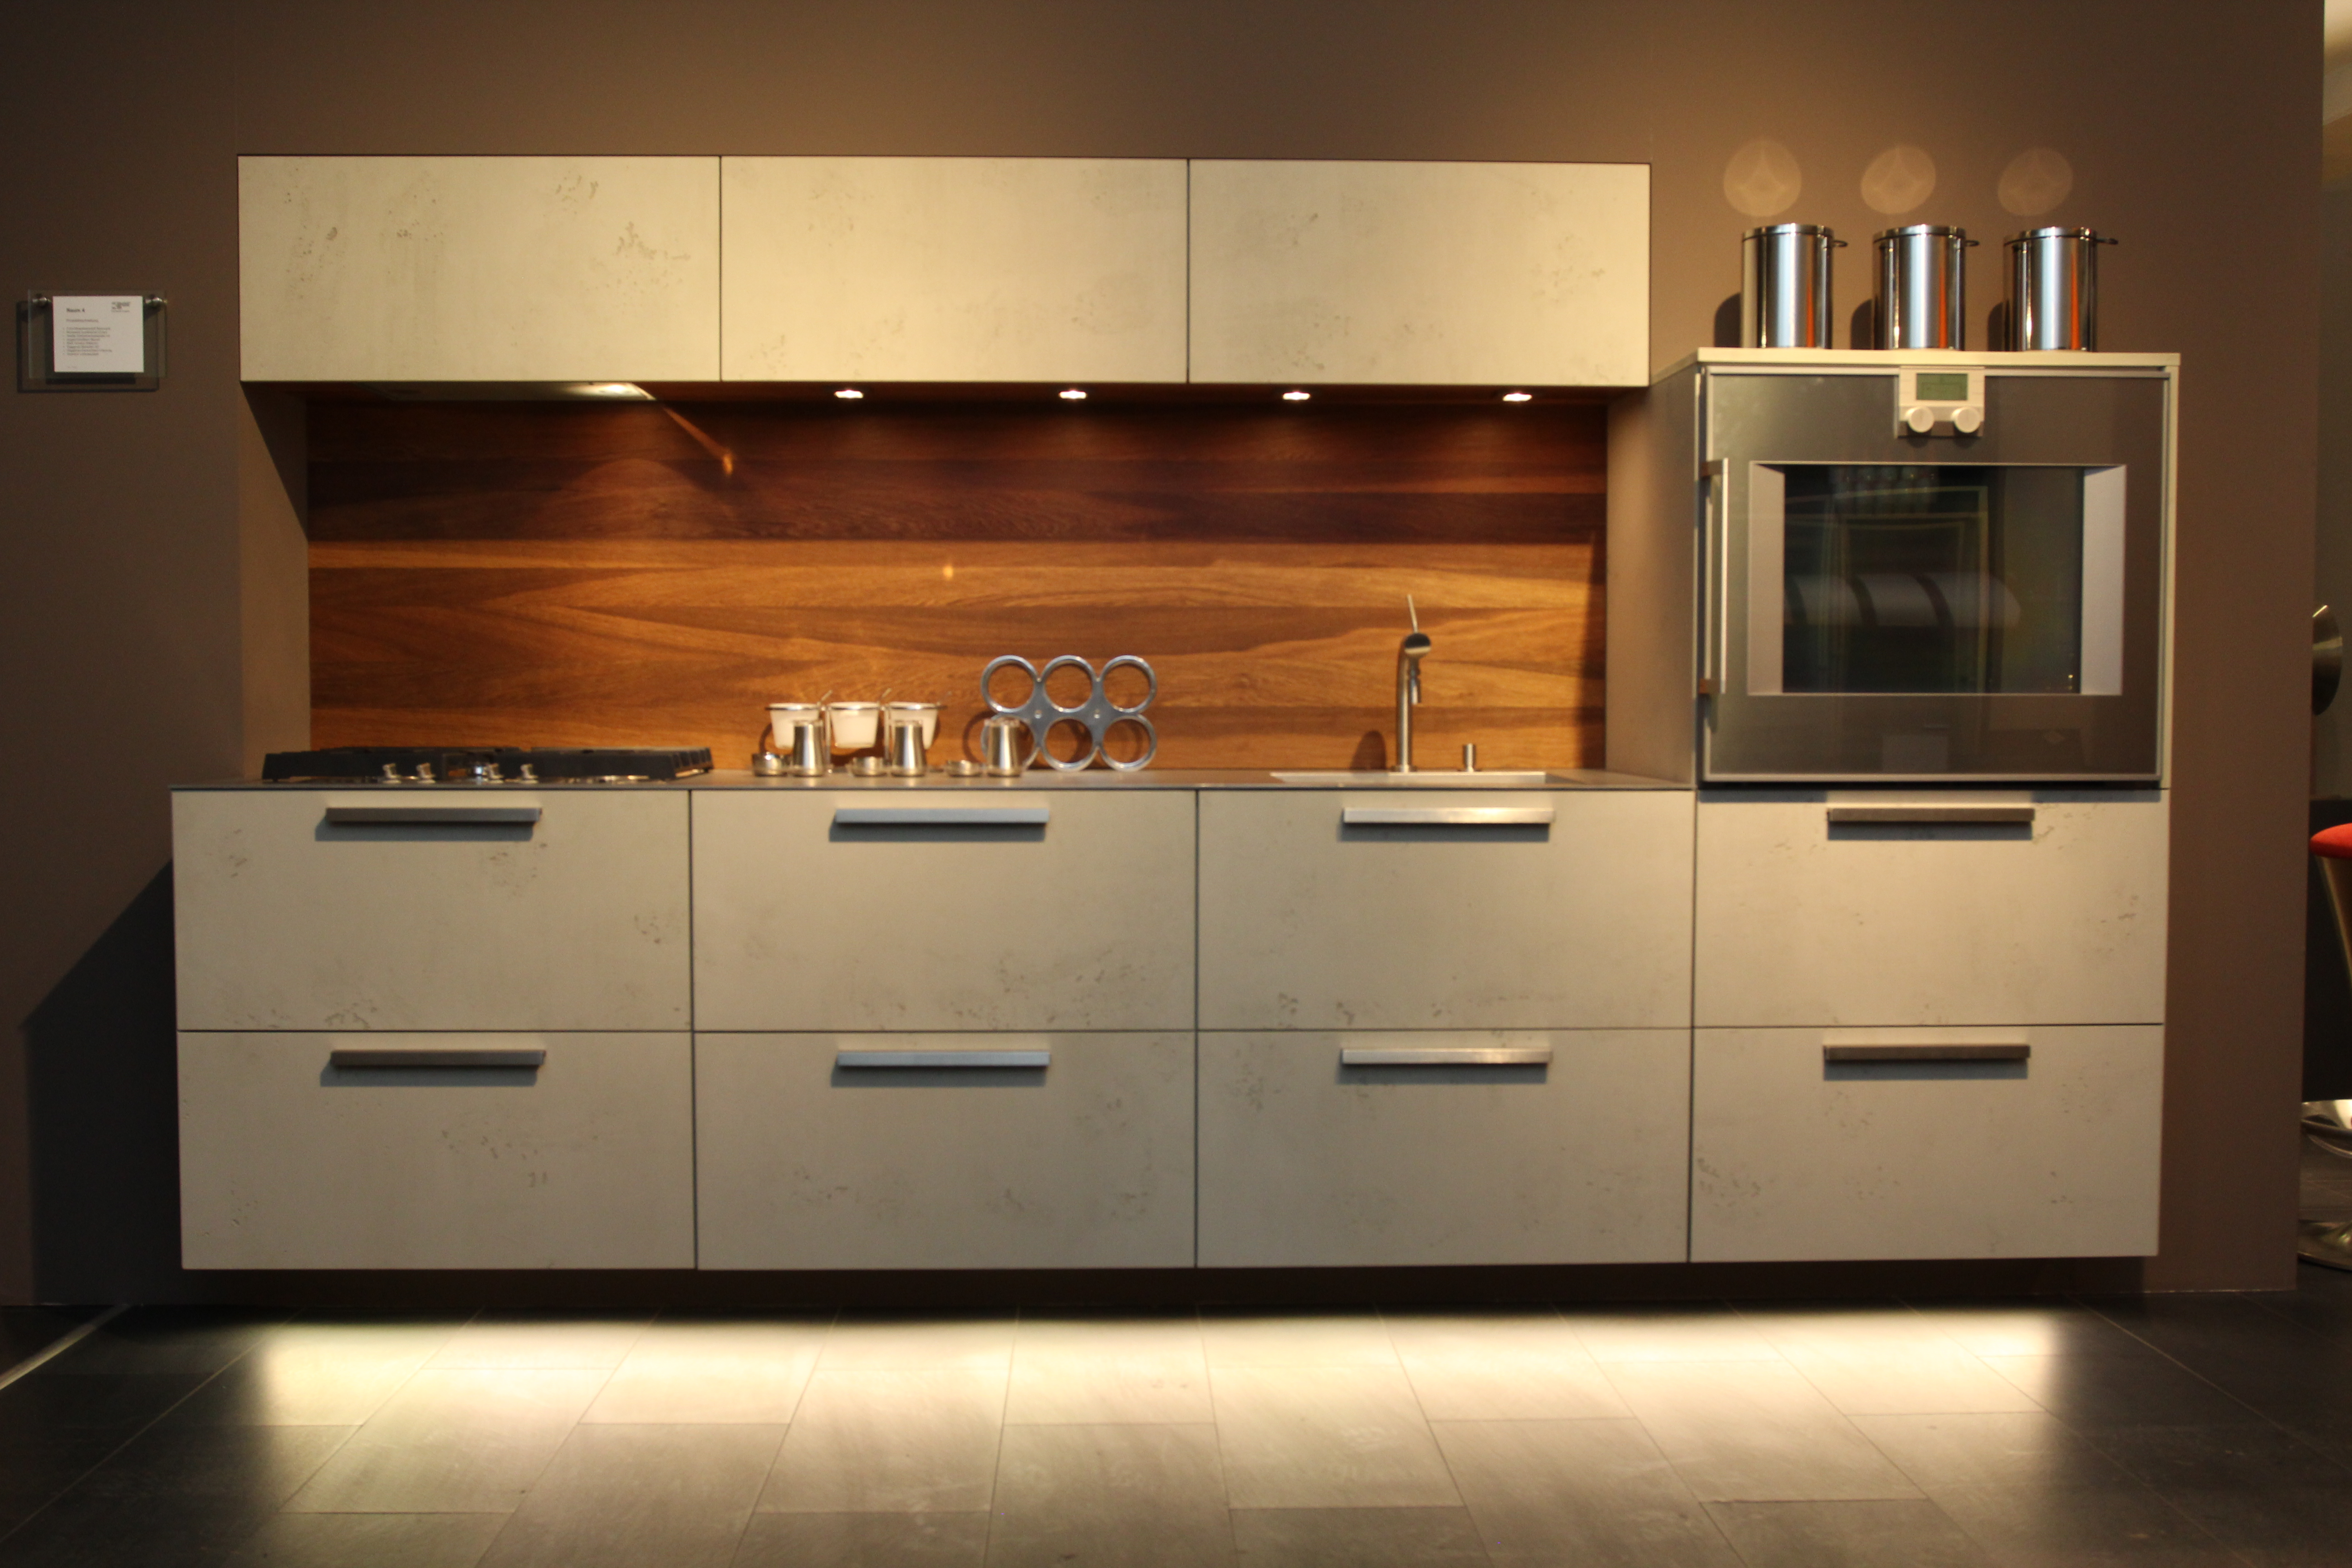 American Office Kitchen Michael Schluetter Archinect